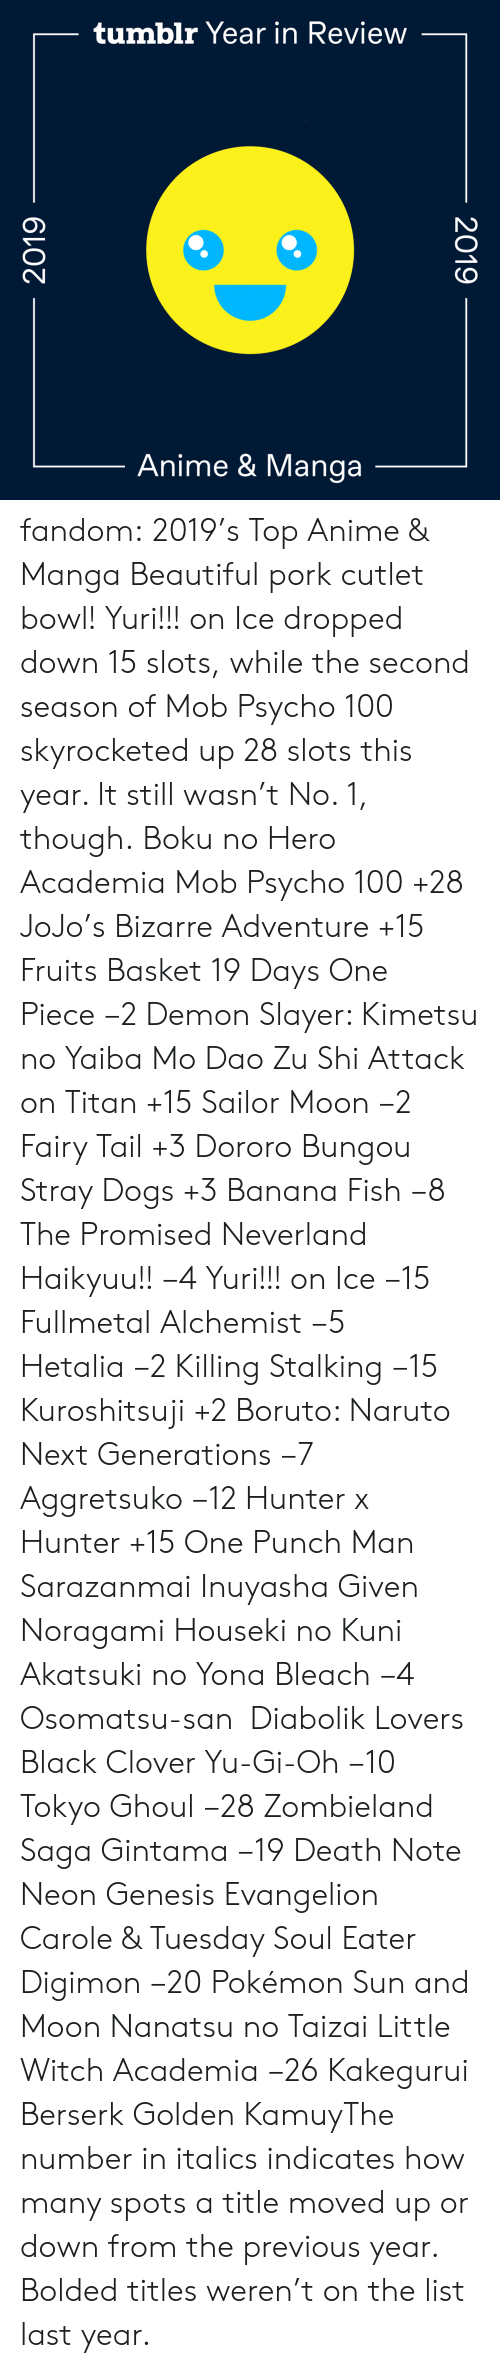 Search: tumblr Year in Review  Anime & Manga  2019  2019 fandom:  2019's Top Anime & Manga  Beautiful pork cutlet bowl! Yuri!!! on Ice dropped down 15 slots, while the second season of Mob Psycho 100 skyrocketed up 28 slots this year. It still wasn't No. 1, though.  Boku no Hero Academia  Mob Psycho 100 +28  JoJo's Bizarre Adventure +15  Fruits Basket  19 Days  One Piece −2  Demon Slayer: Kimetsu no Yaiba  Mo Dao Zu Shi  Attack on Titan +15  Sailor Moon −2  Fairy Tail +3  Dororo  Bungou Stray Dogs +3  Banana Fish −8  The Promised Neverland  Haikyuu!! −4  Yuri!!! on Ice −15  Fullmetal Alchemist −5  Hetalia −2  Killing Stalking −15  Kuroshitsuji +2  Boruto: Naruto Next Generations −7  Aggretsuko −12  Hunter x Hunter +15  One Punch Man  Sarazanmai  Inuyasha  Given  Noragami  Houseki no Kuni  Akatsuki no Yona  Bleach −4  Osomatsu-san   Diabolik Lovers  Black Clover  Yu-Gi-Oh −10  Tokyo Ghoul −28  Zombieland Saga  Gintama −19  Death Note  Neon Genesis Evangelion  Carole & Tuesday  Soul Eater  Digimon −20  Pokémon Sun and Moon  Nanatsu no Taizai  Little Witch Academia −26  Kakegurui  Berserk Golden KamuyThe number in italics indicates how many spots a title moved up or down from the previous year. Bolded titles weren't on the list last year.